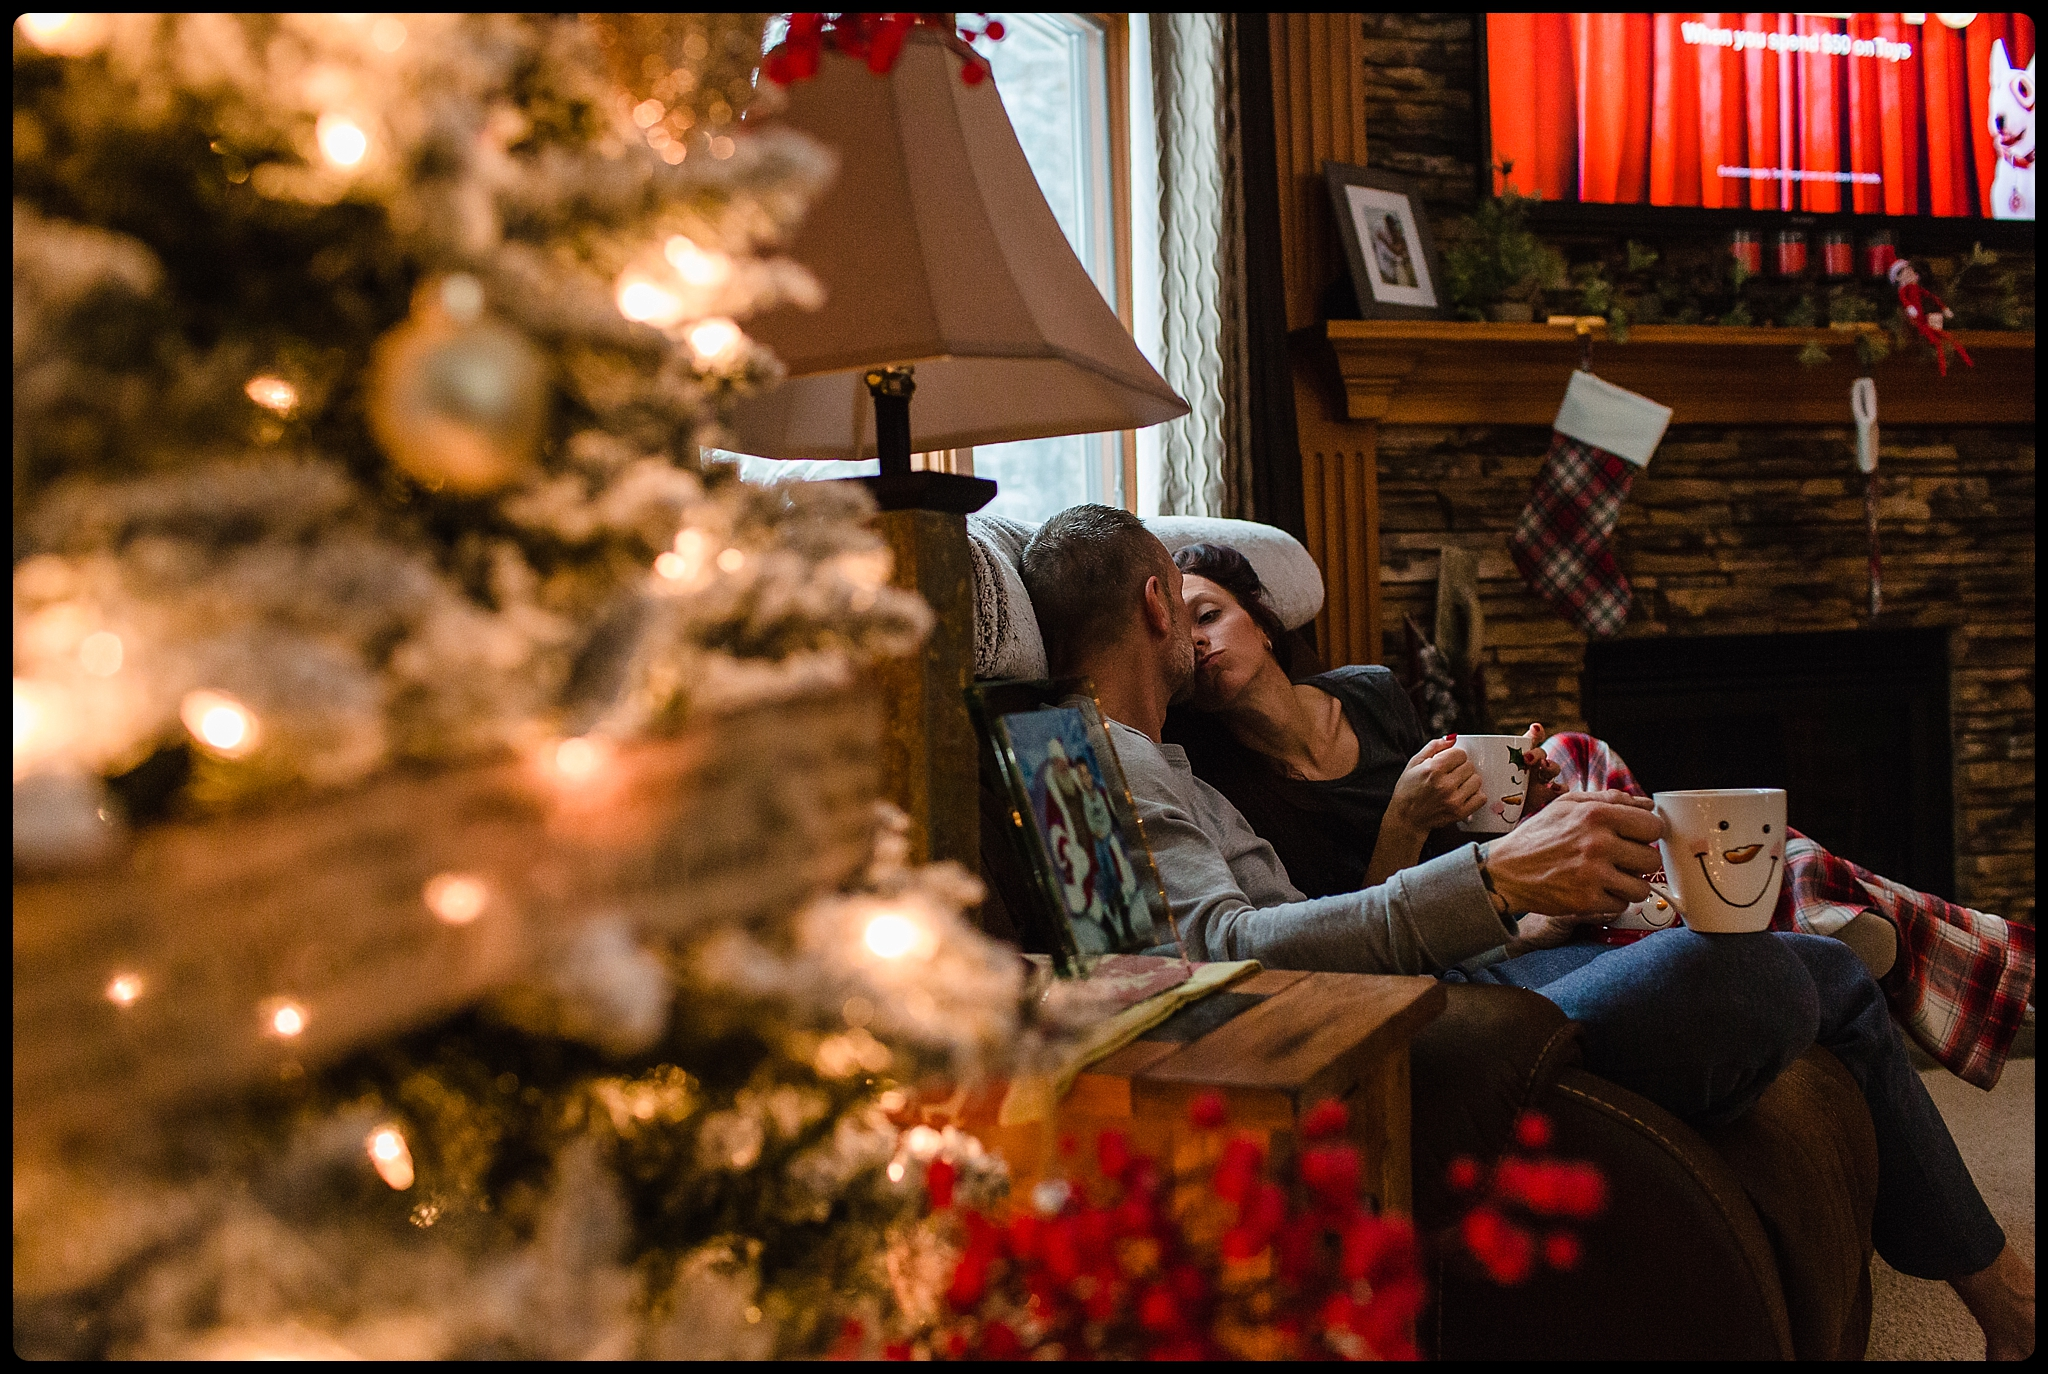 Couple shares a kiss over hot cocoa at Christmas time.